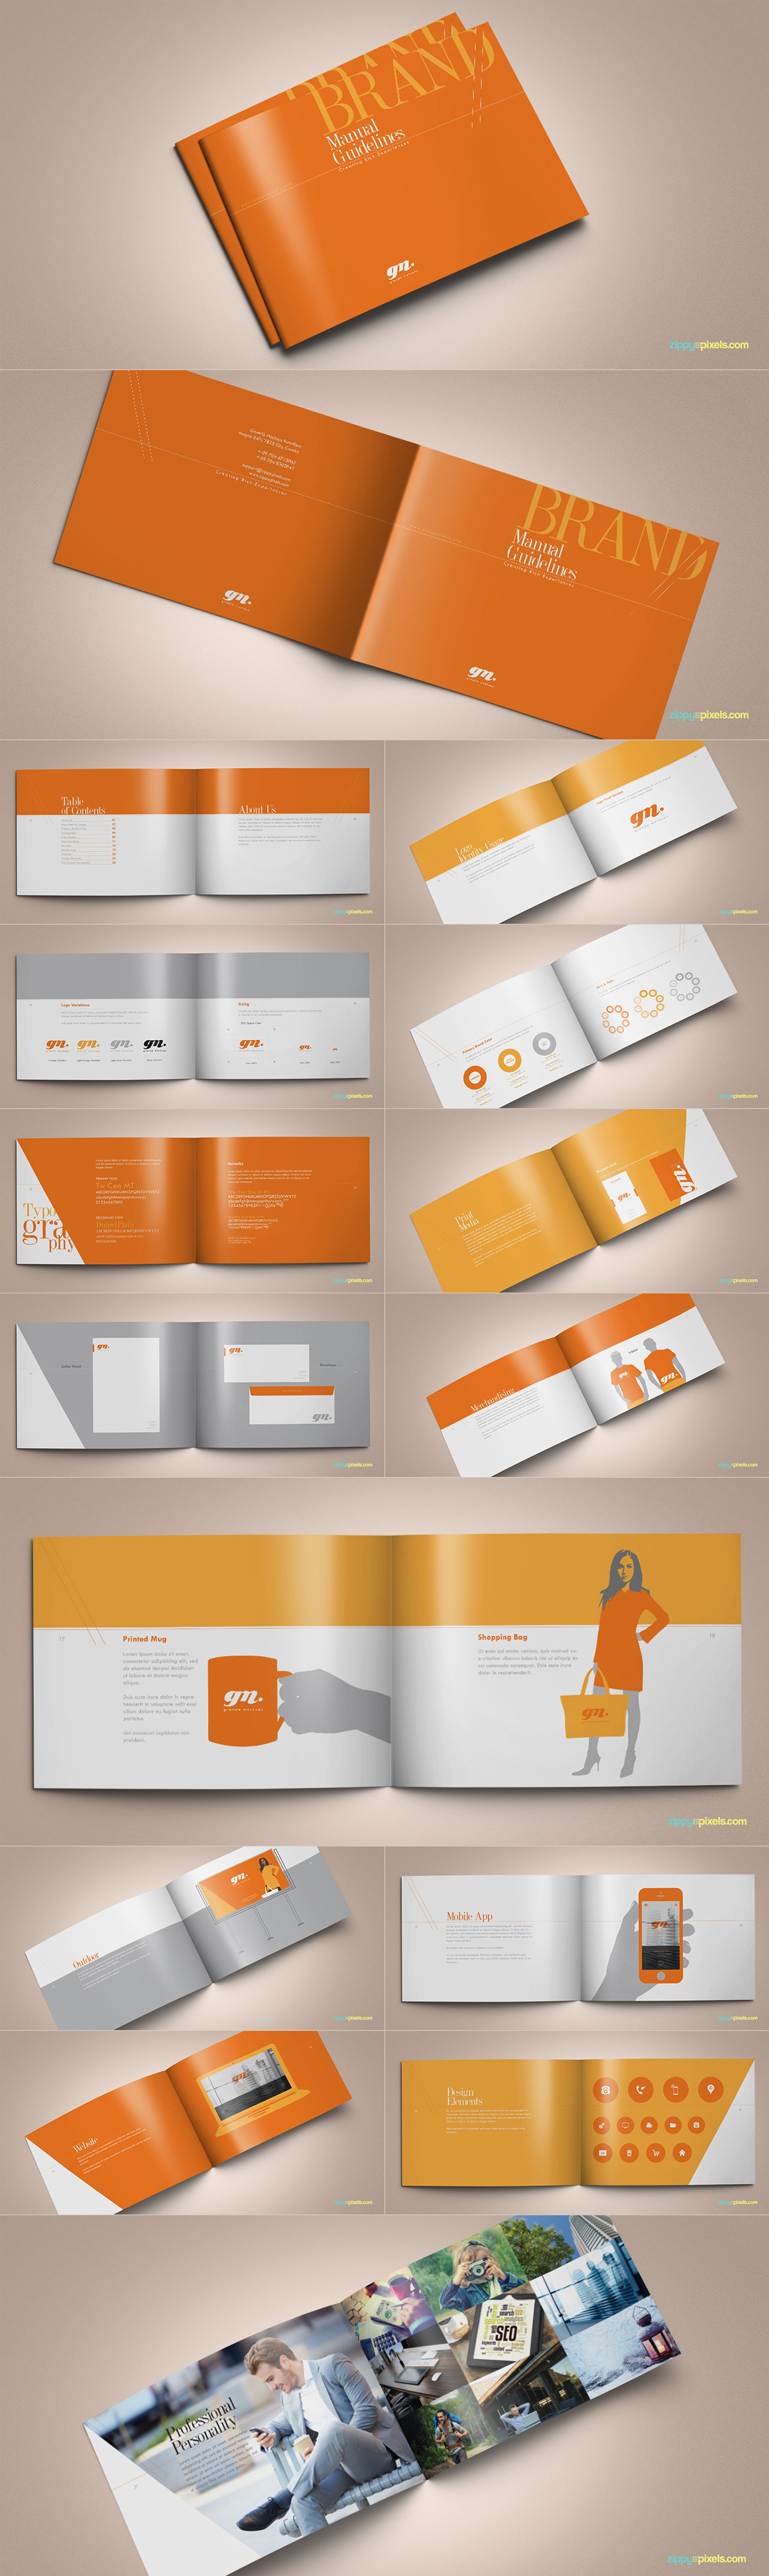 Style Guide & Brand Book Templates-strip4